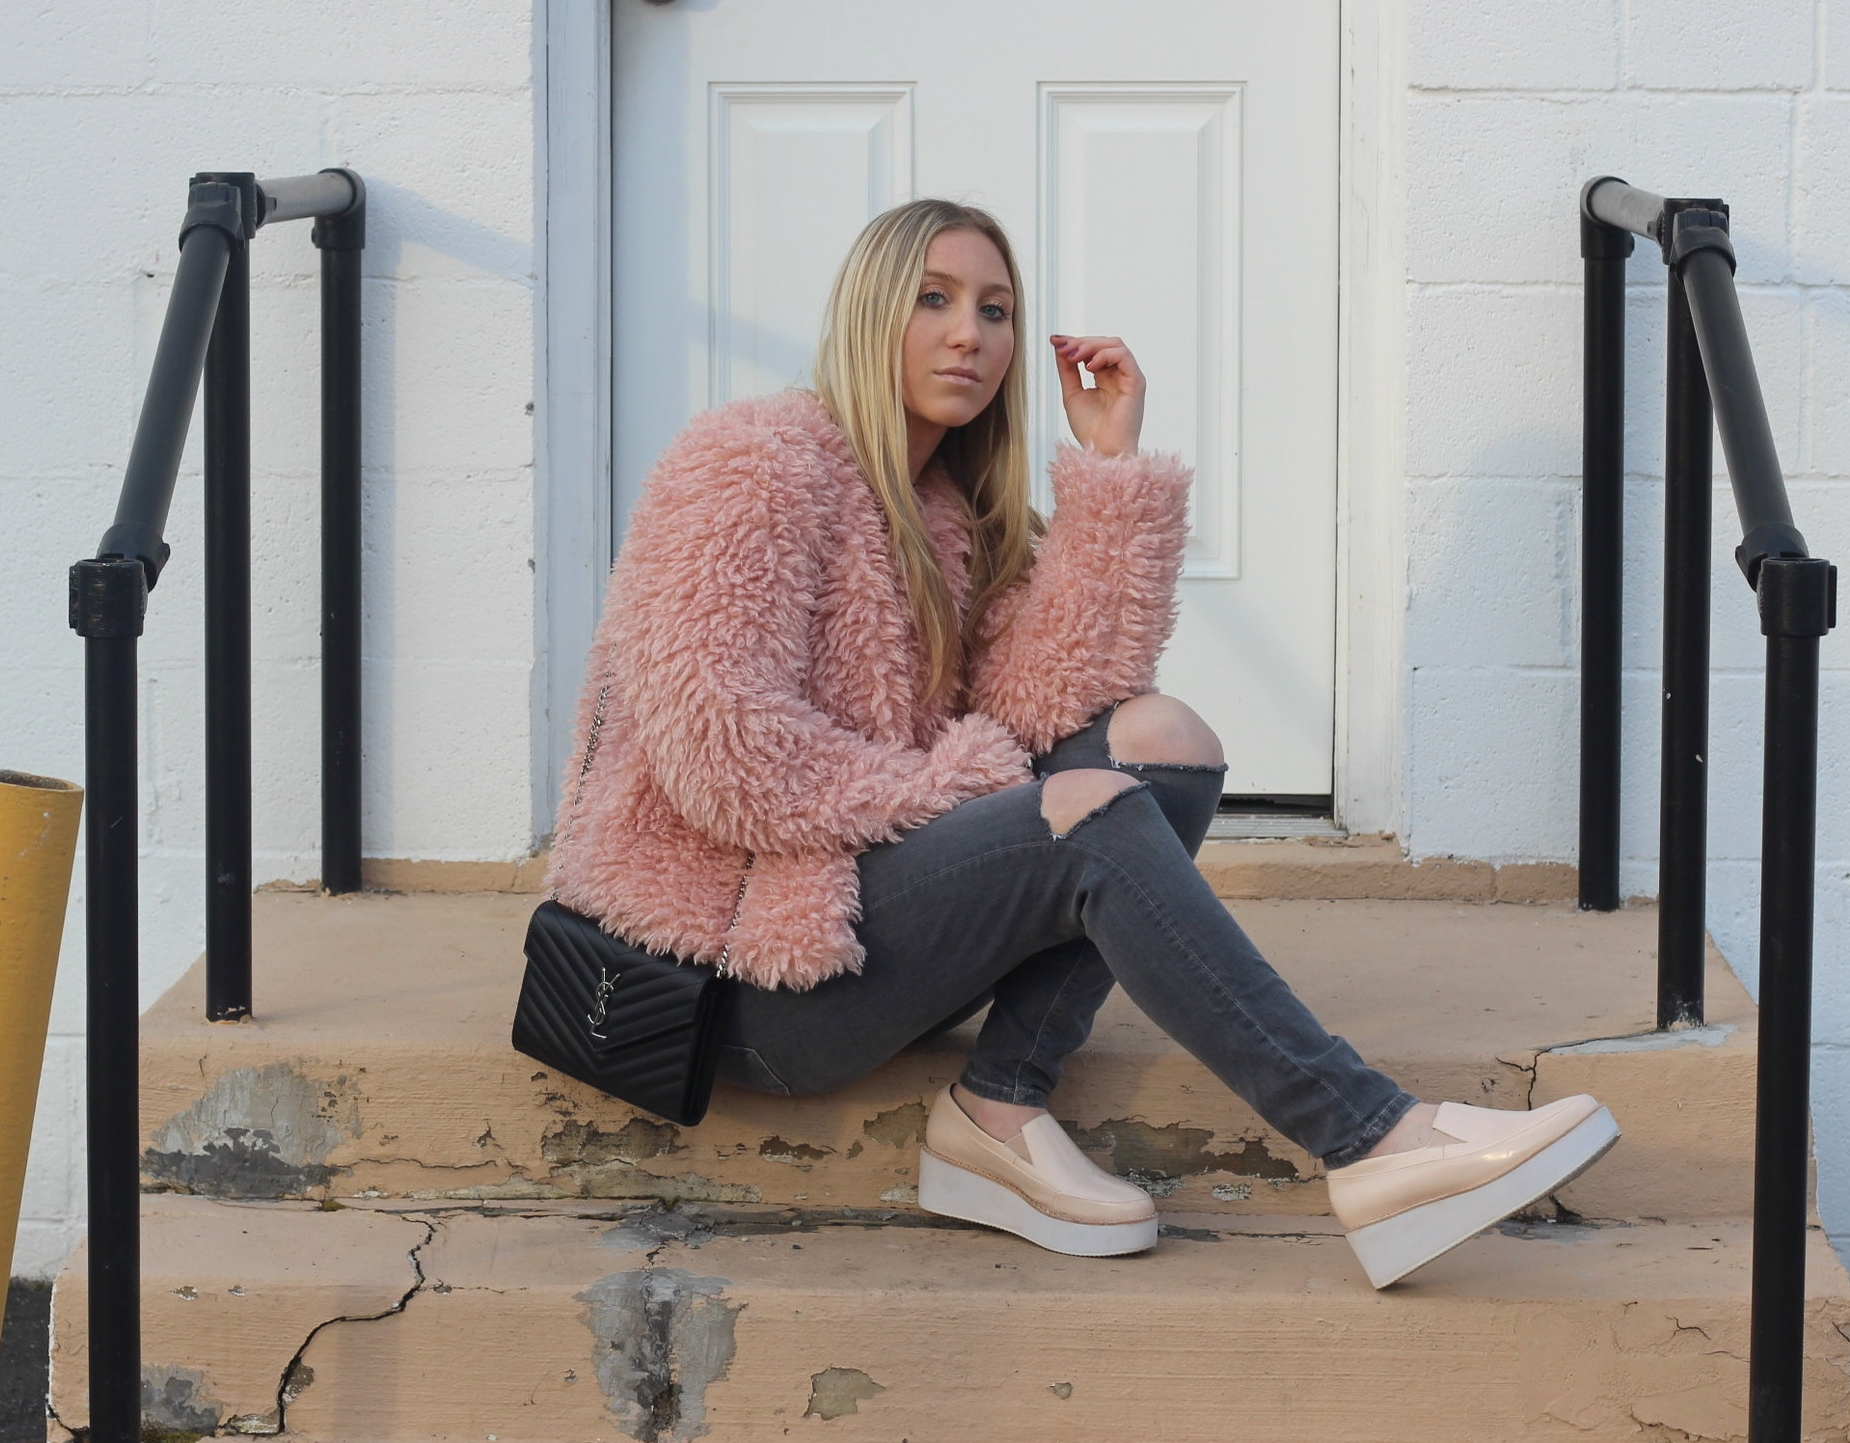 Carly of Au Courant Life in Forever 21 faux fur coat, Saint Laurent bag, Sol Sana shoes, and Topshop jeans